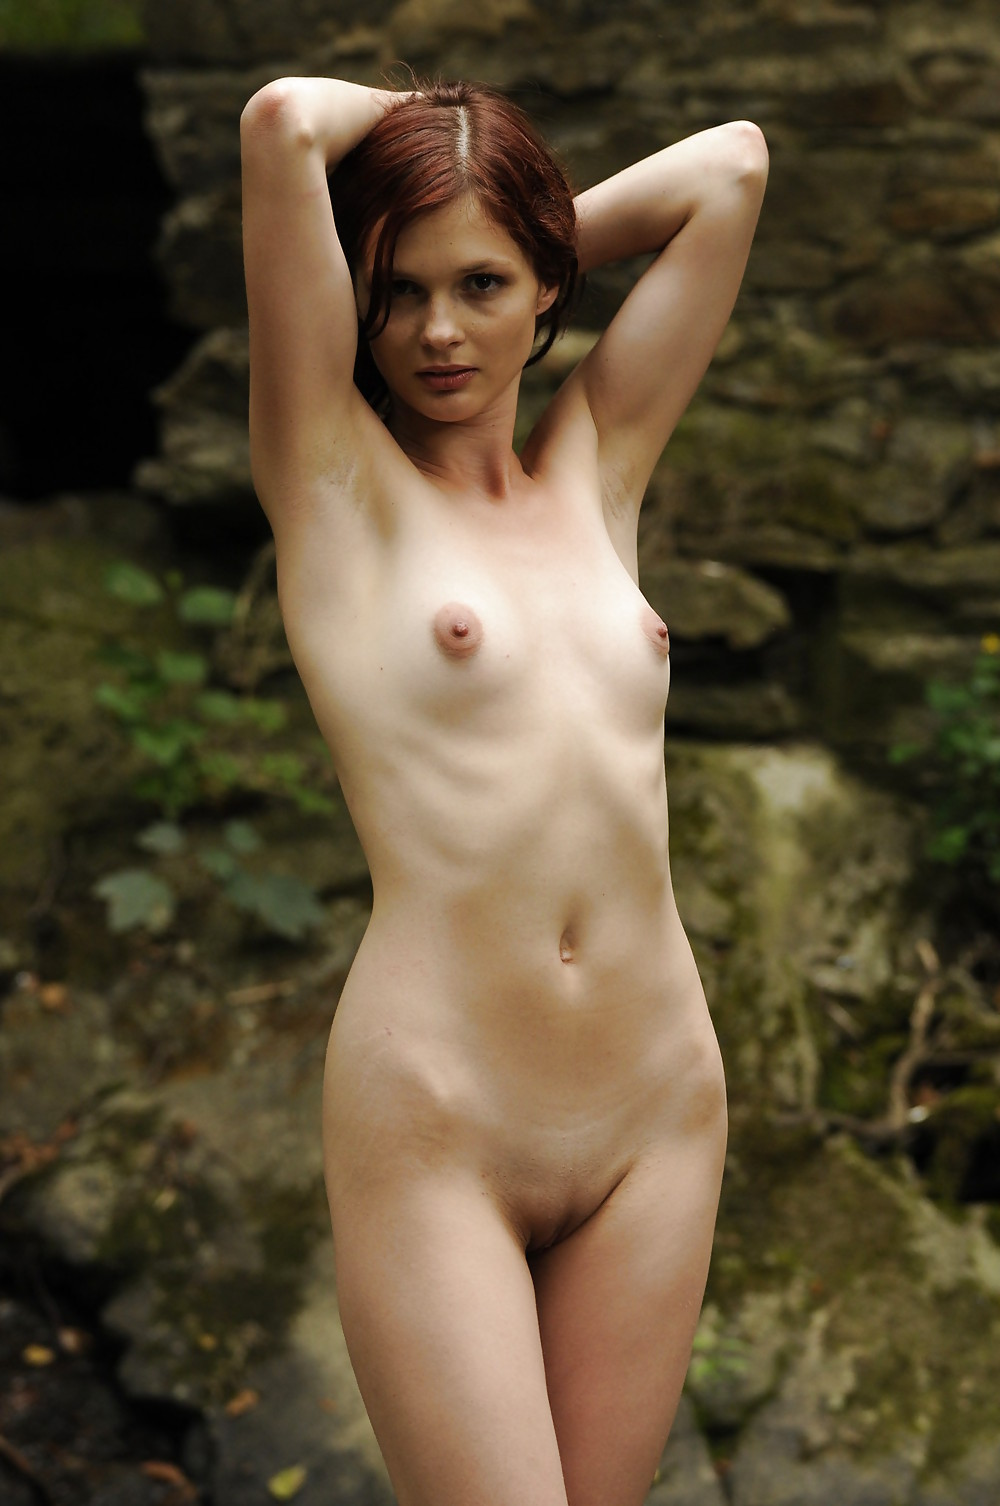 Pussy sarah canning naked pics down blouse pictures